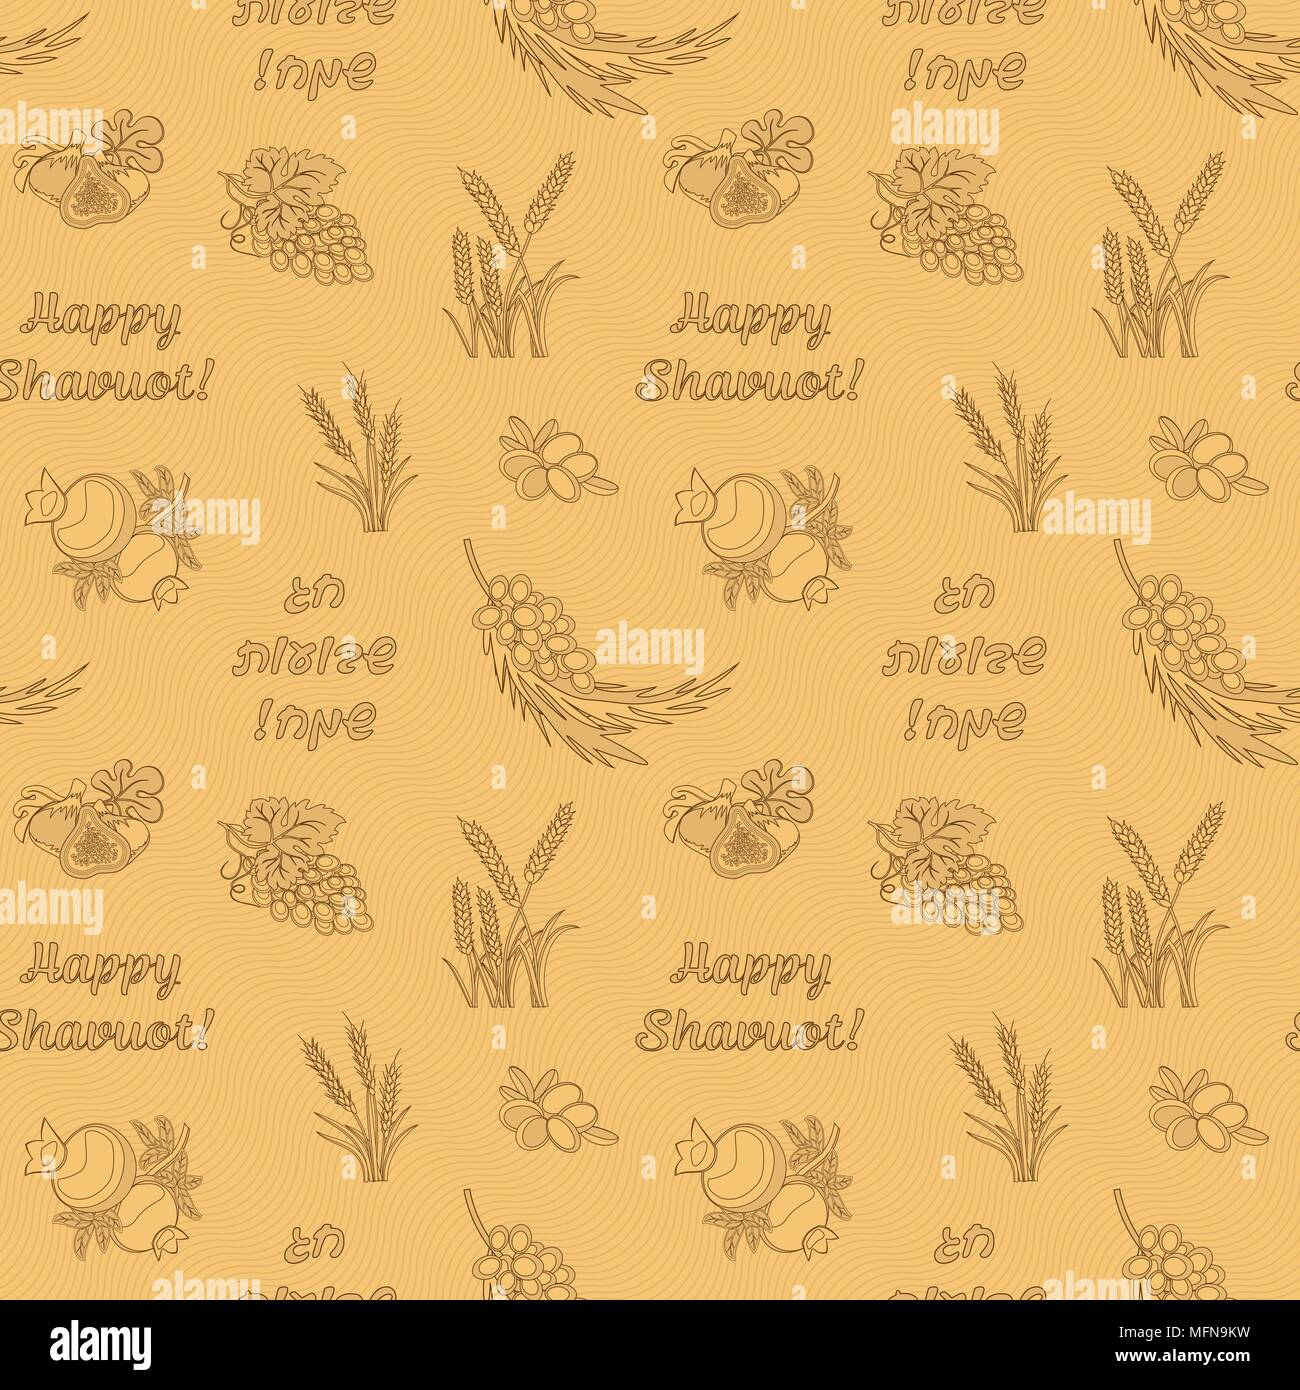 Seven species of the Shavuot, agricultural products on Jewish holiday with inscription Happy Shavuot, seamless pattern. Vector illustration EPS 10 - Stock Vector